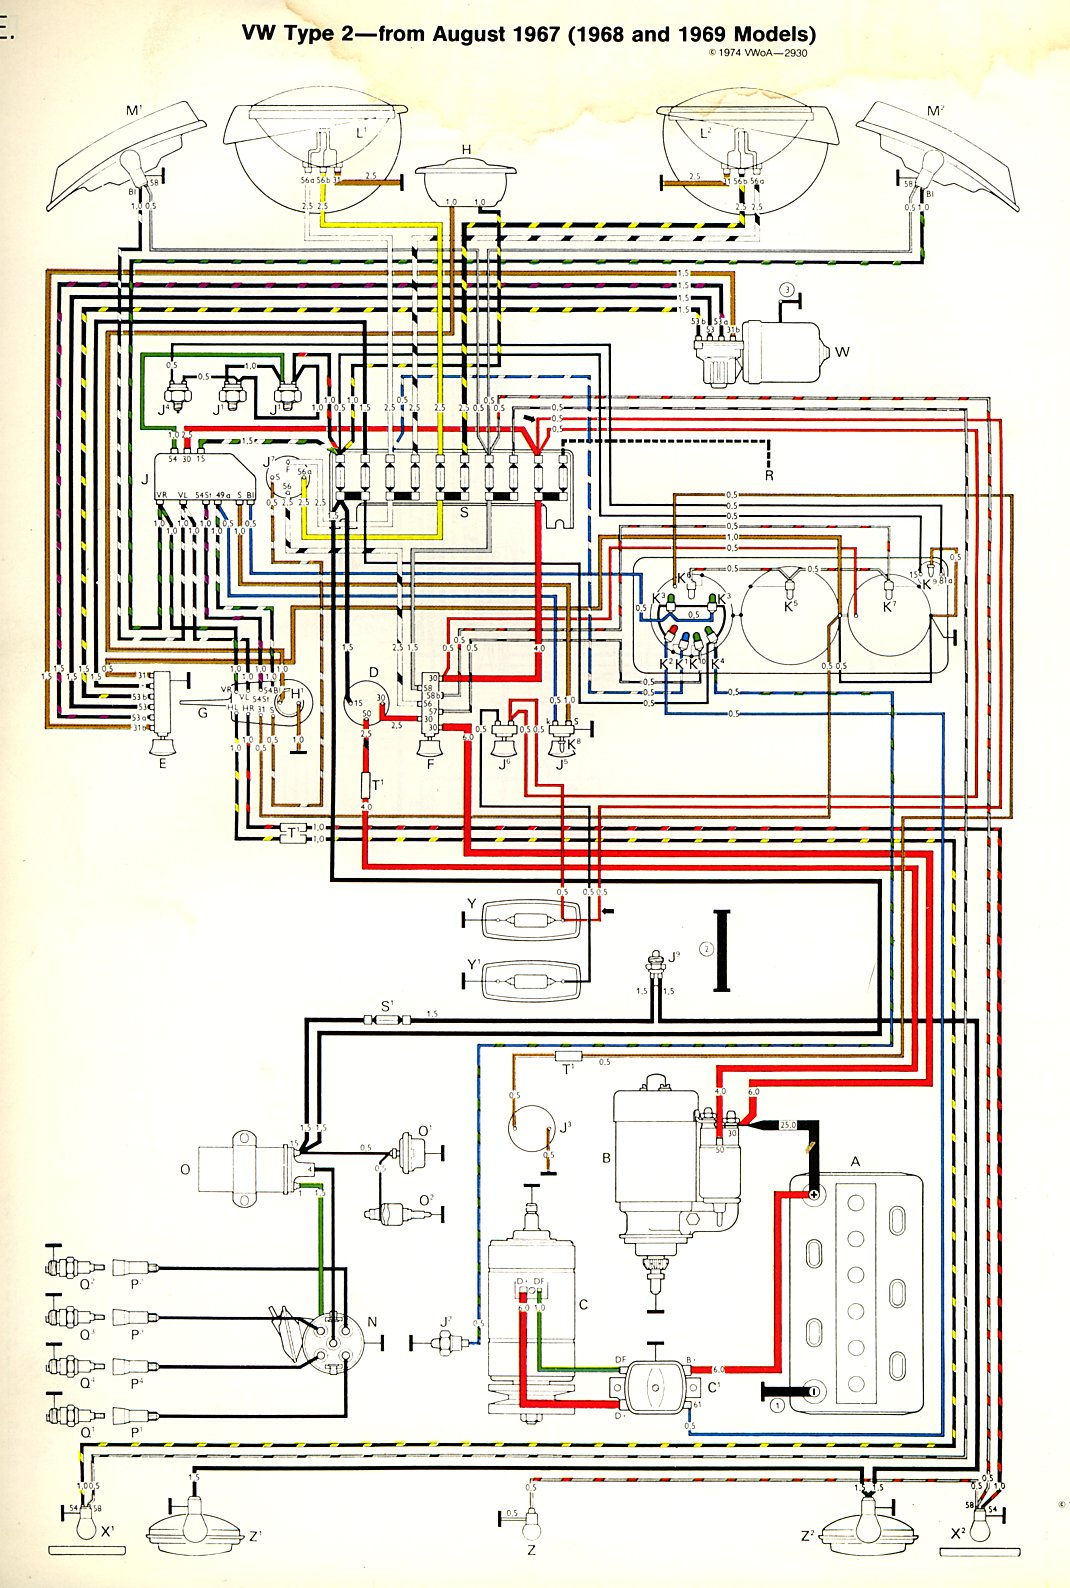 baybus_6869a thesamba com type 2 wiring diagrams 1968 vw bus wiring diagram at bakdesigns.co